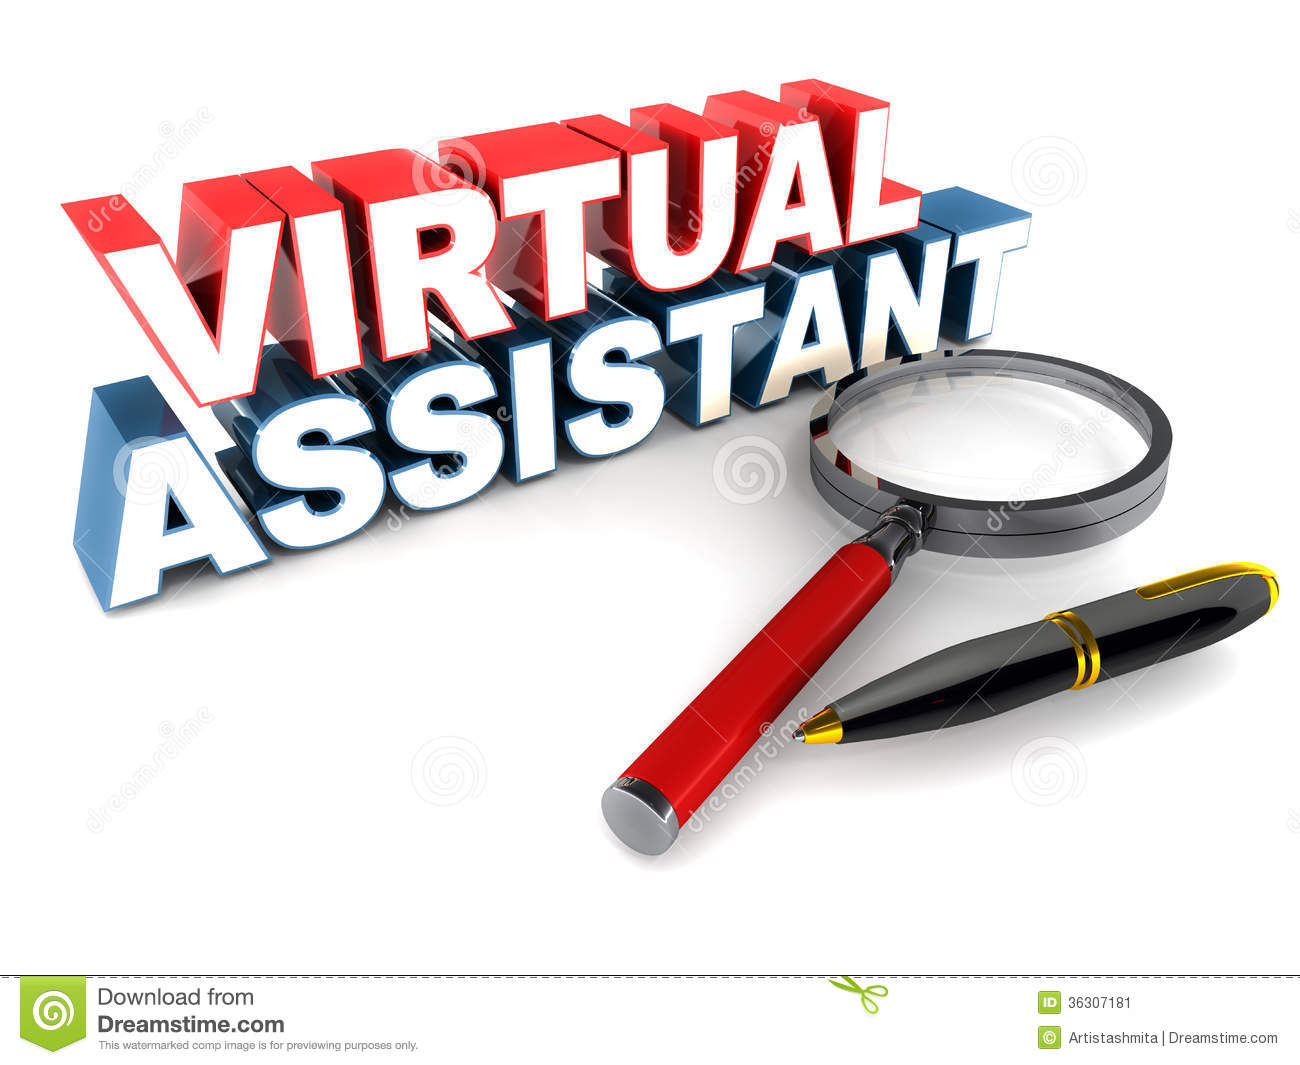 14 Virtual Assistant Free Stock Photo Images